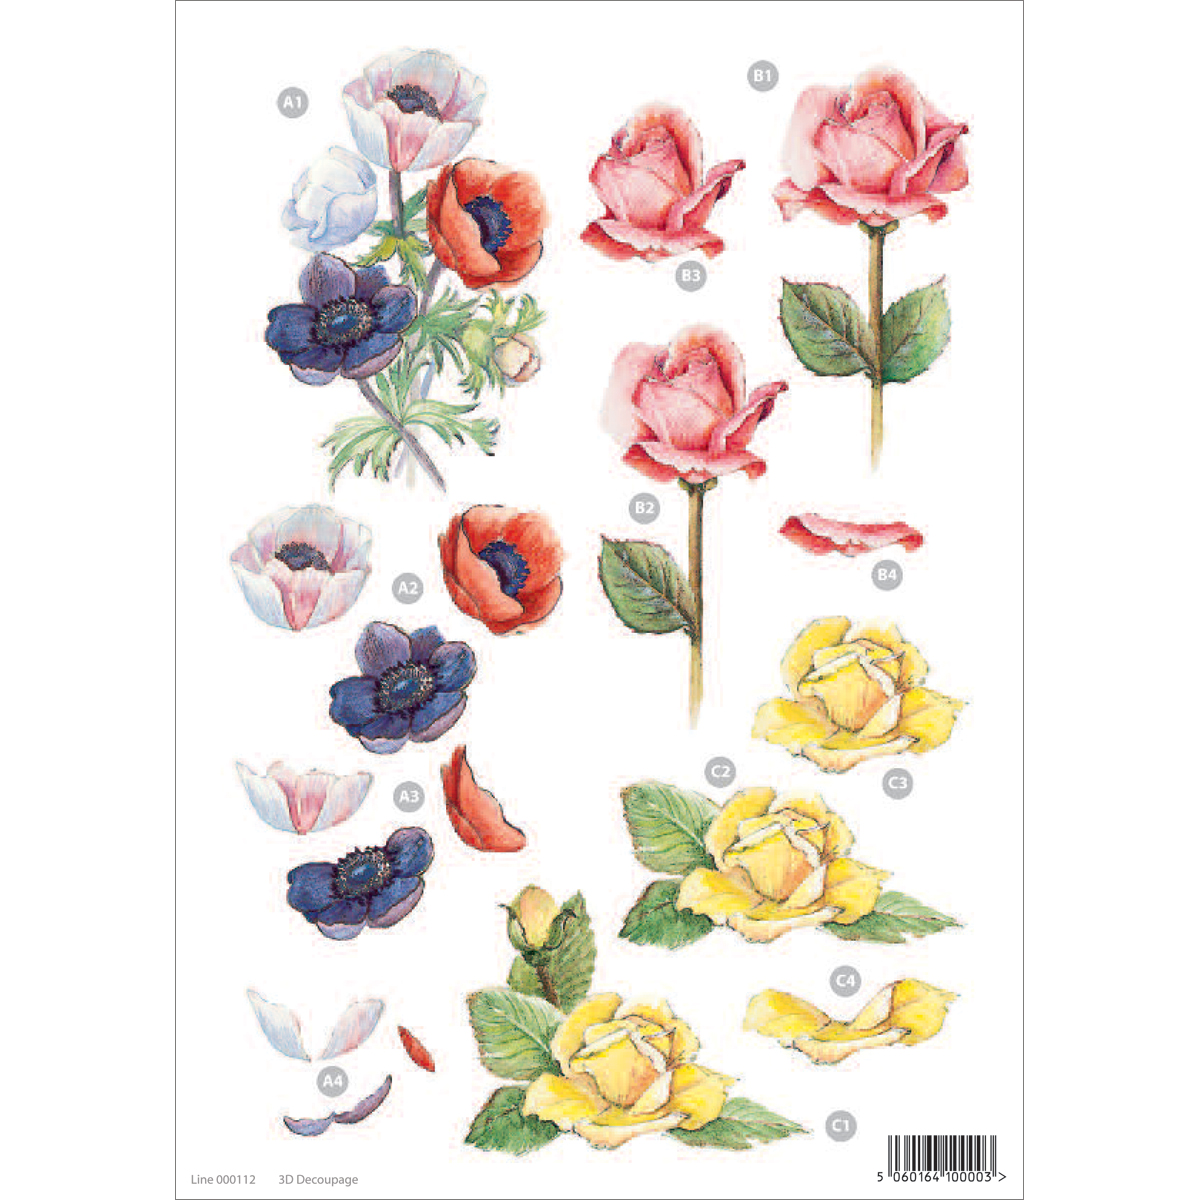 3-D Die-Cut Decoupage Sheet-Floral